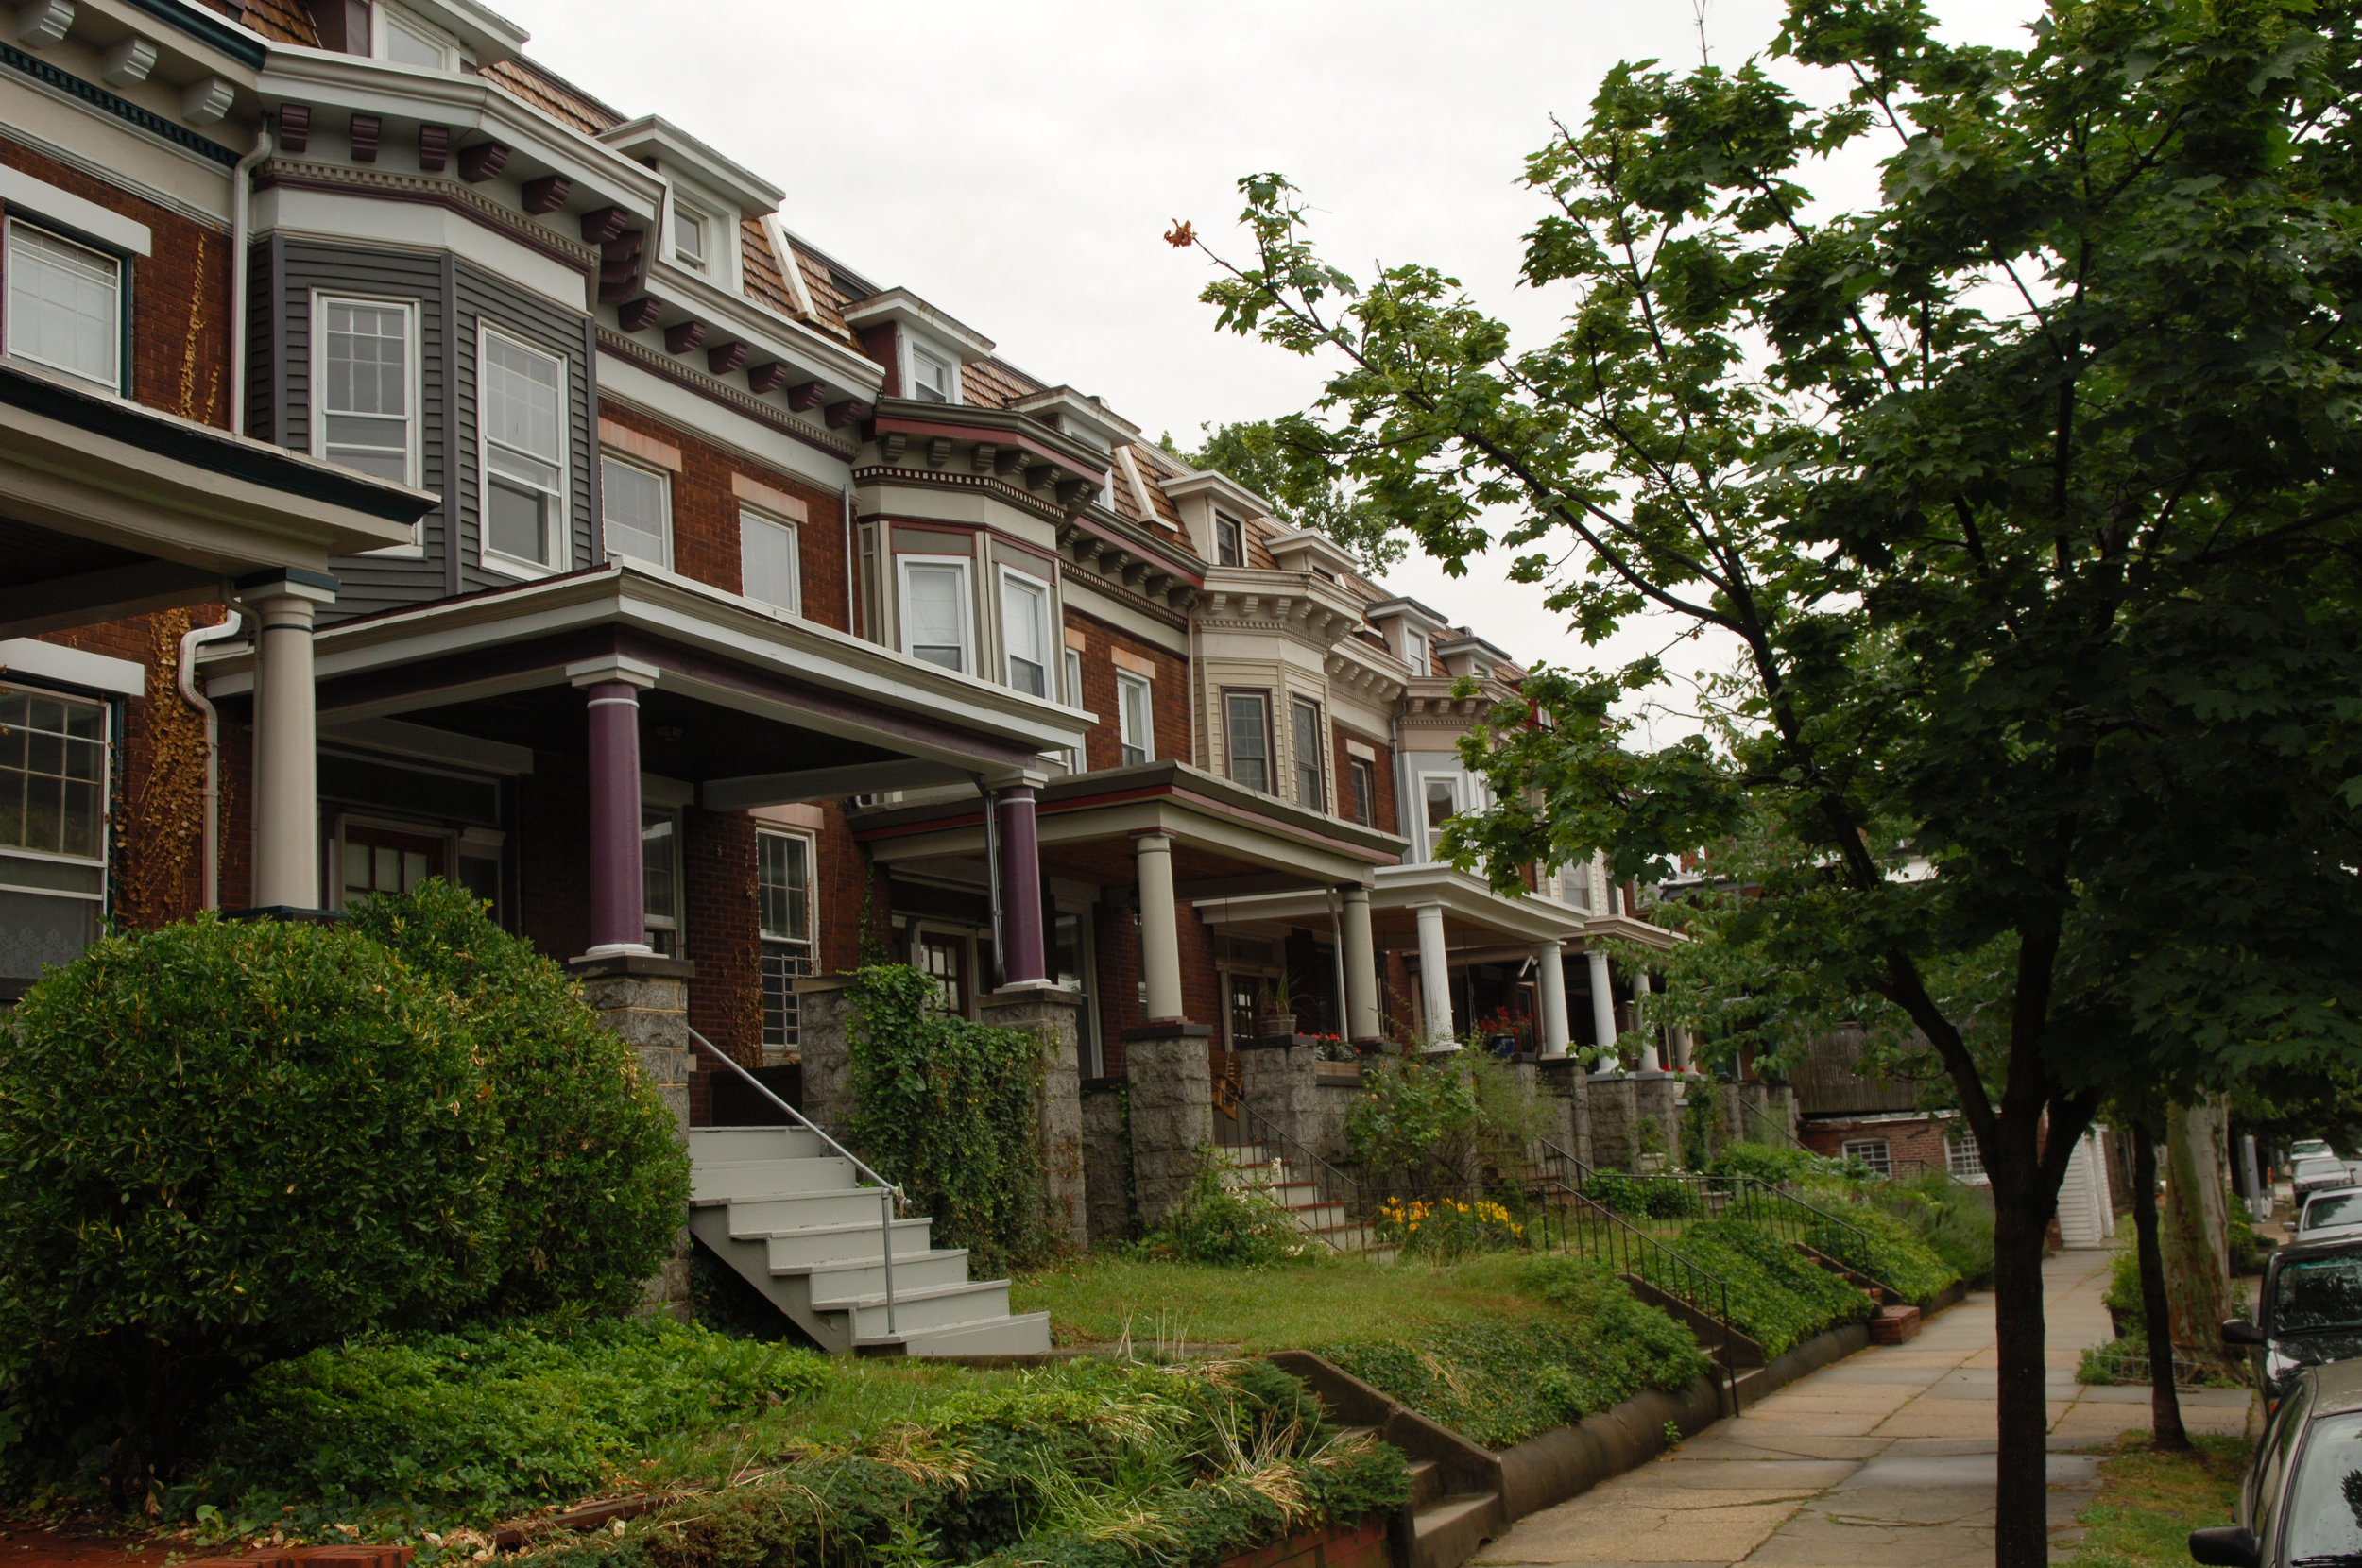 315 another streetscape.JPG